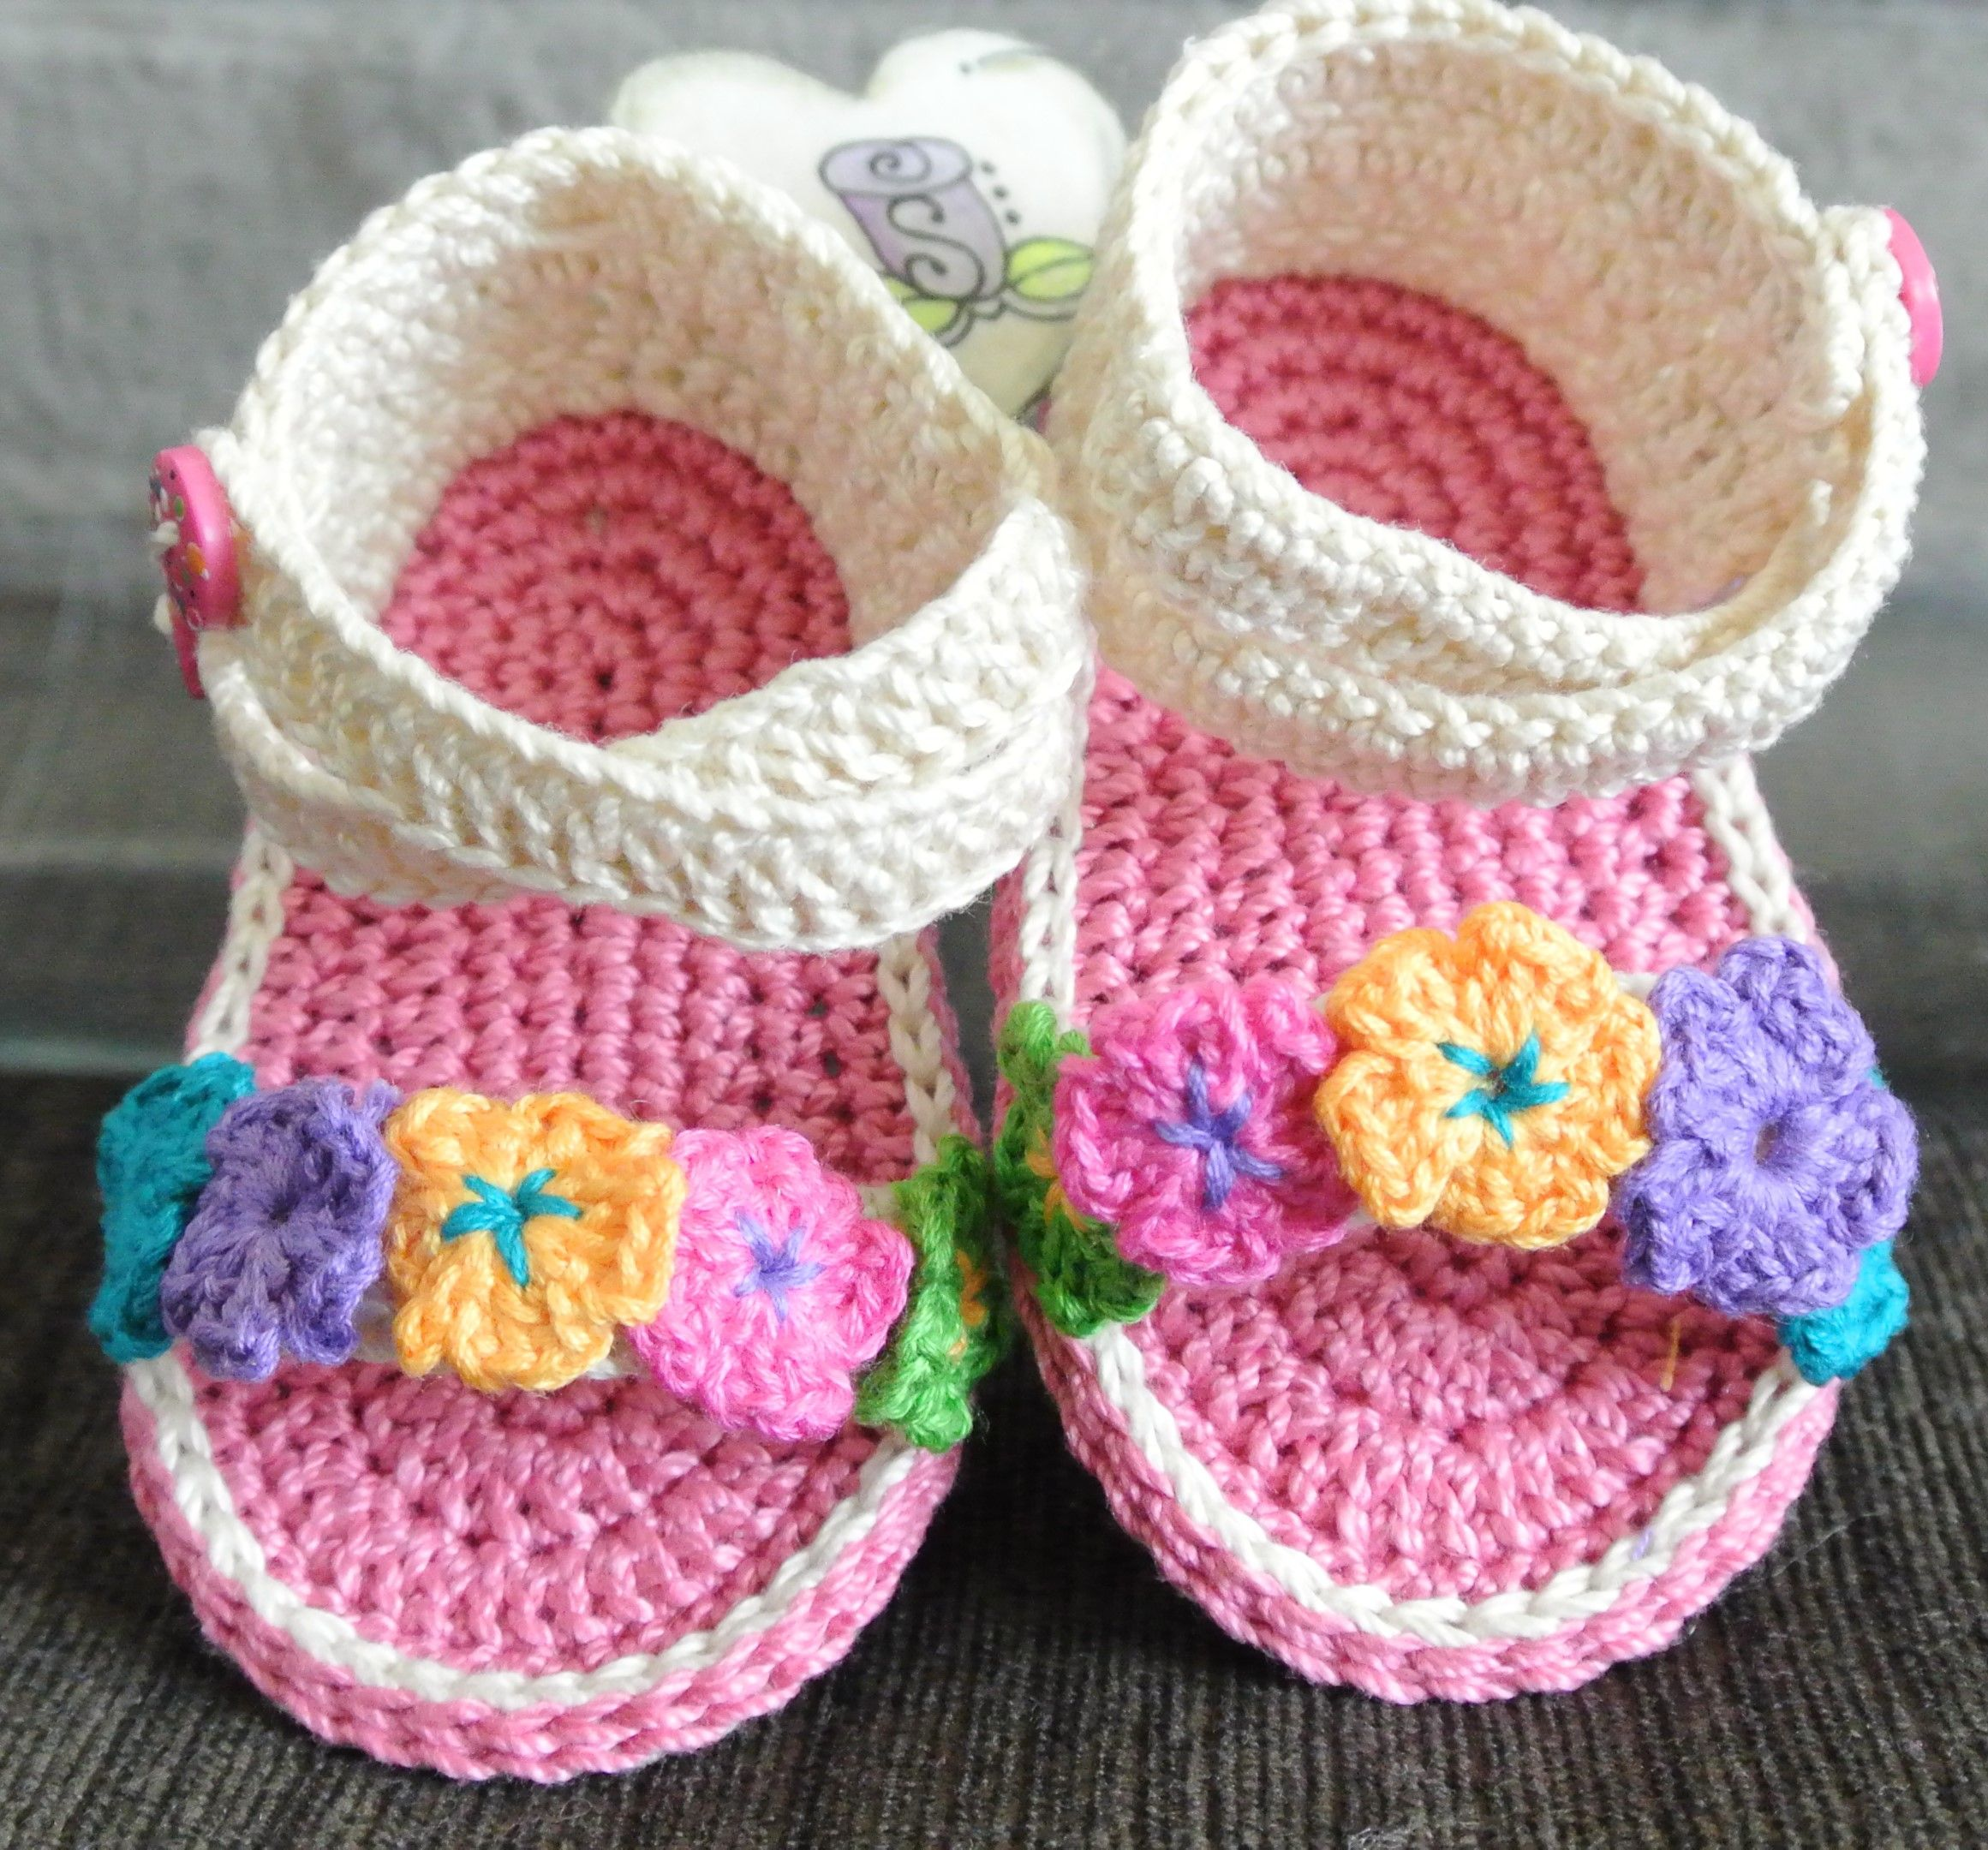 Crochet Baby Shoes Hand Made By Me 3 Girls Shoes